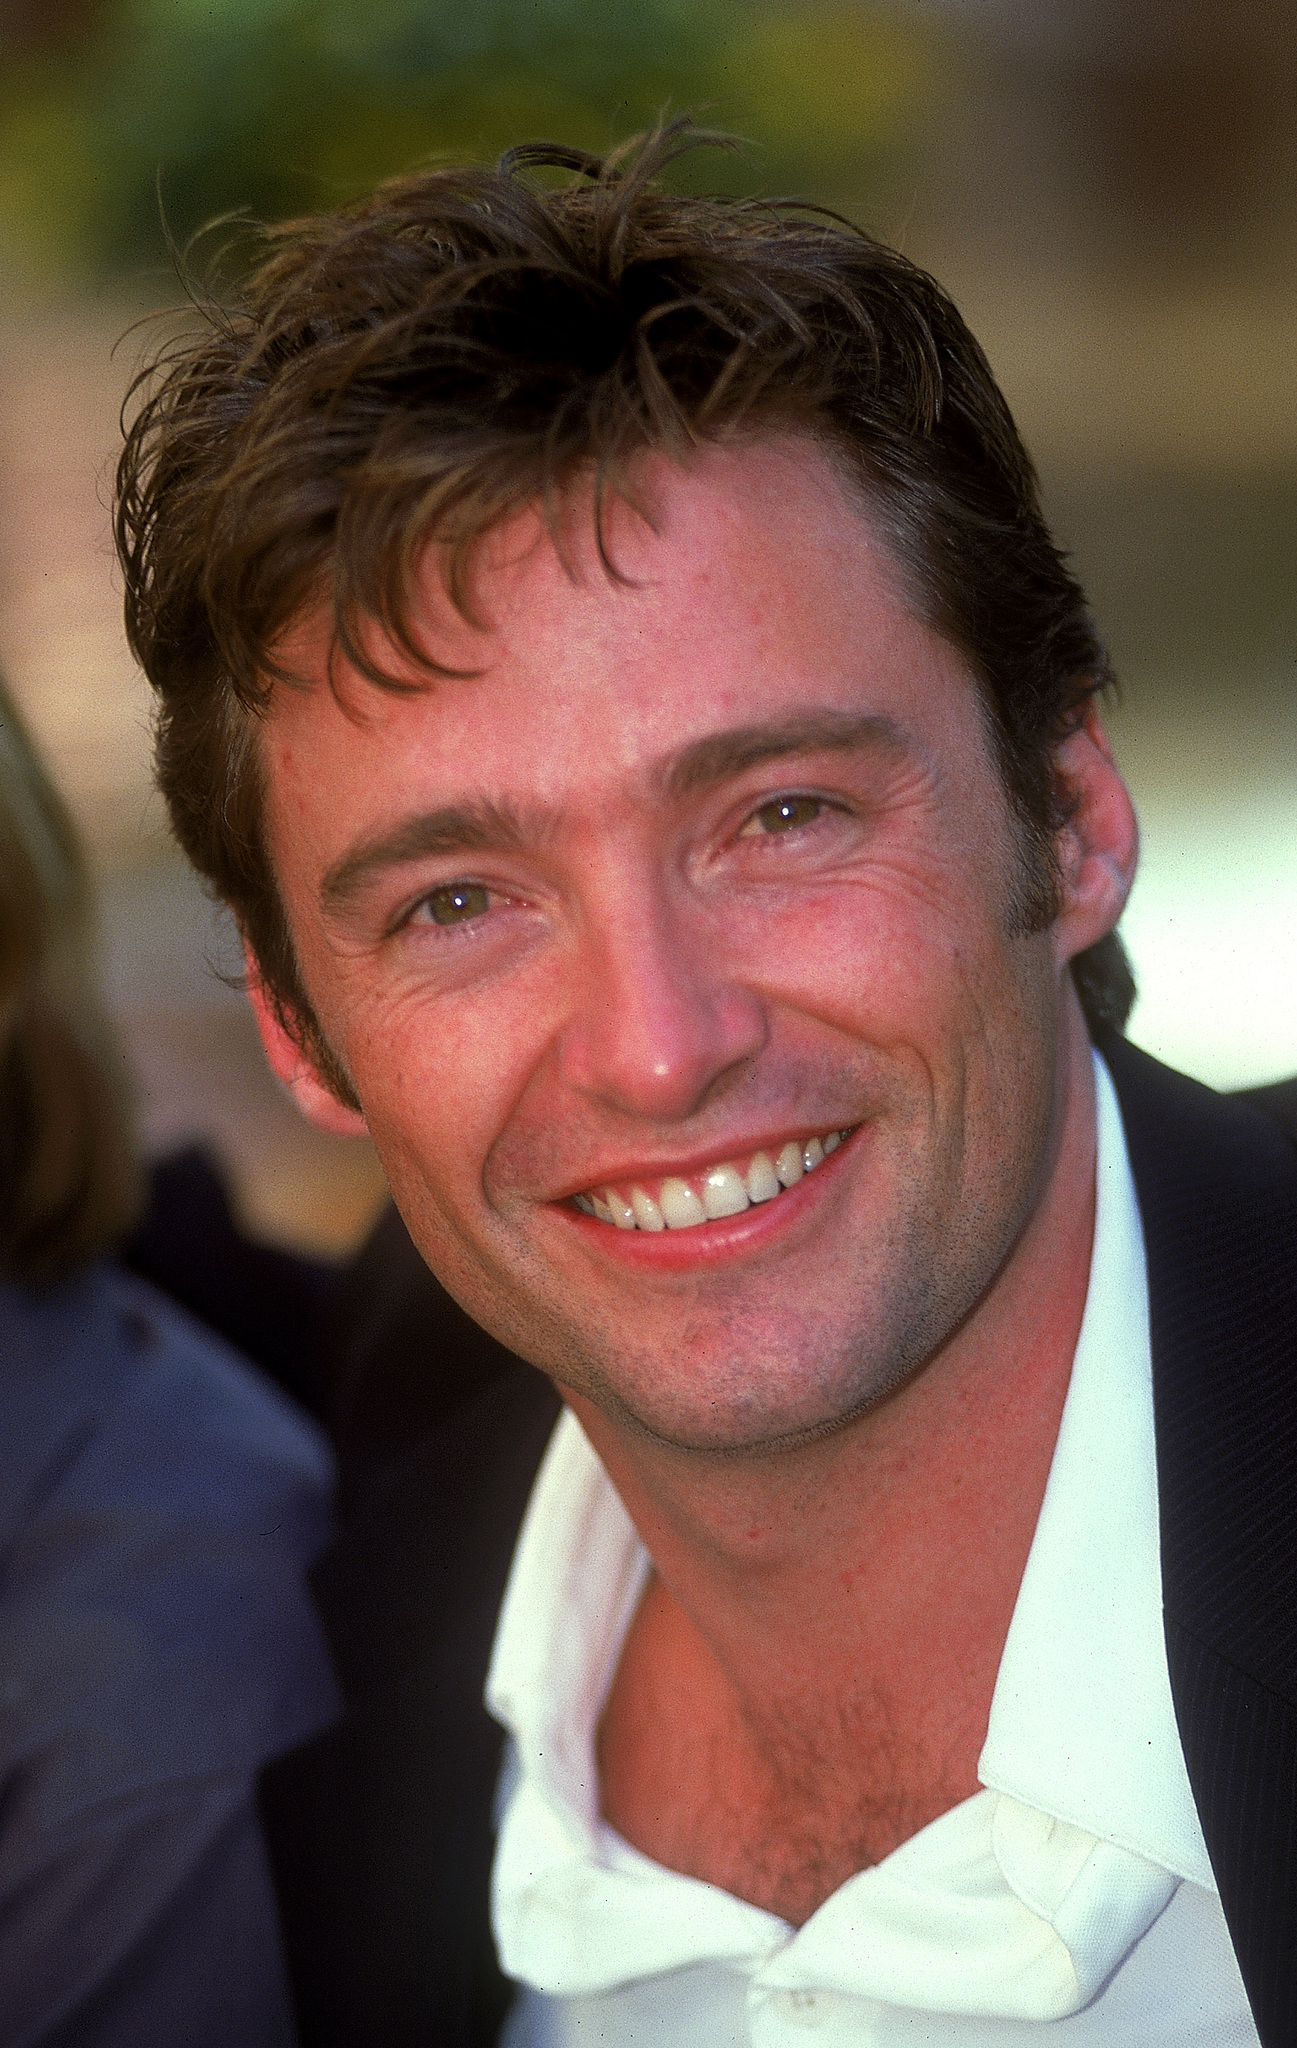 Hugh Jackman at an event for Erskineville Kings (1999)